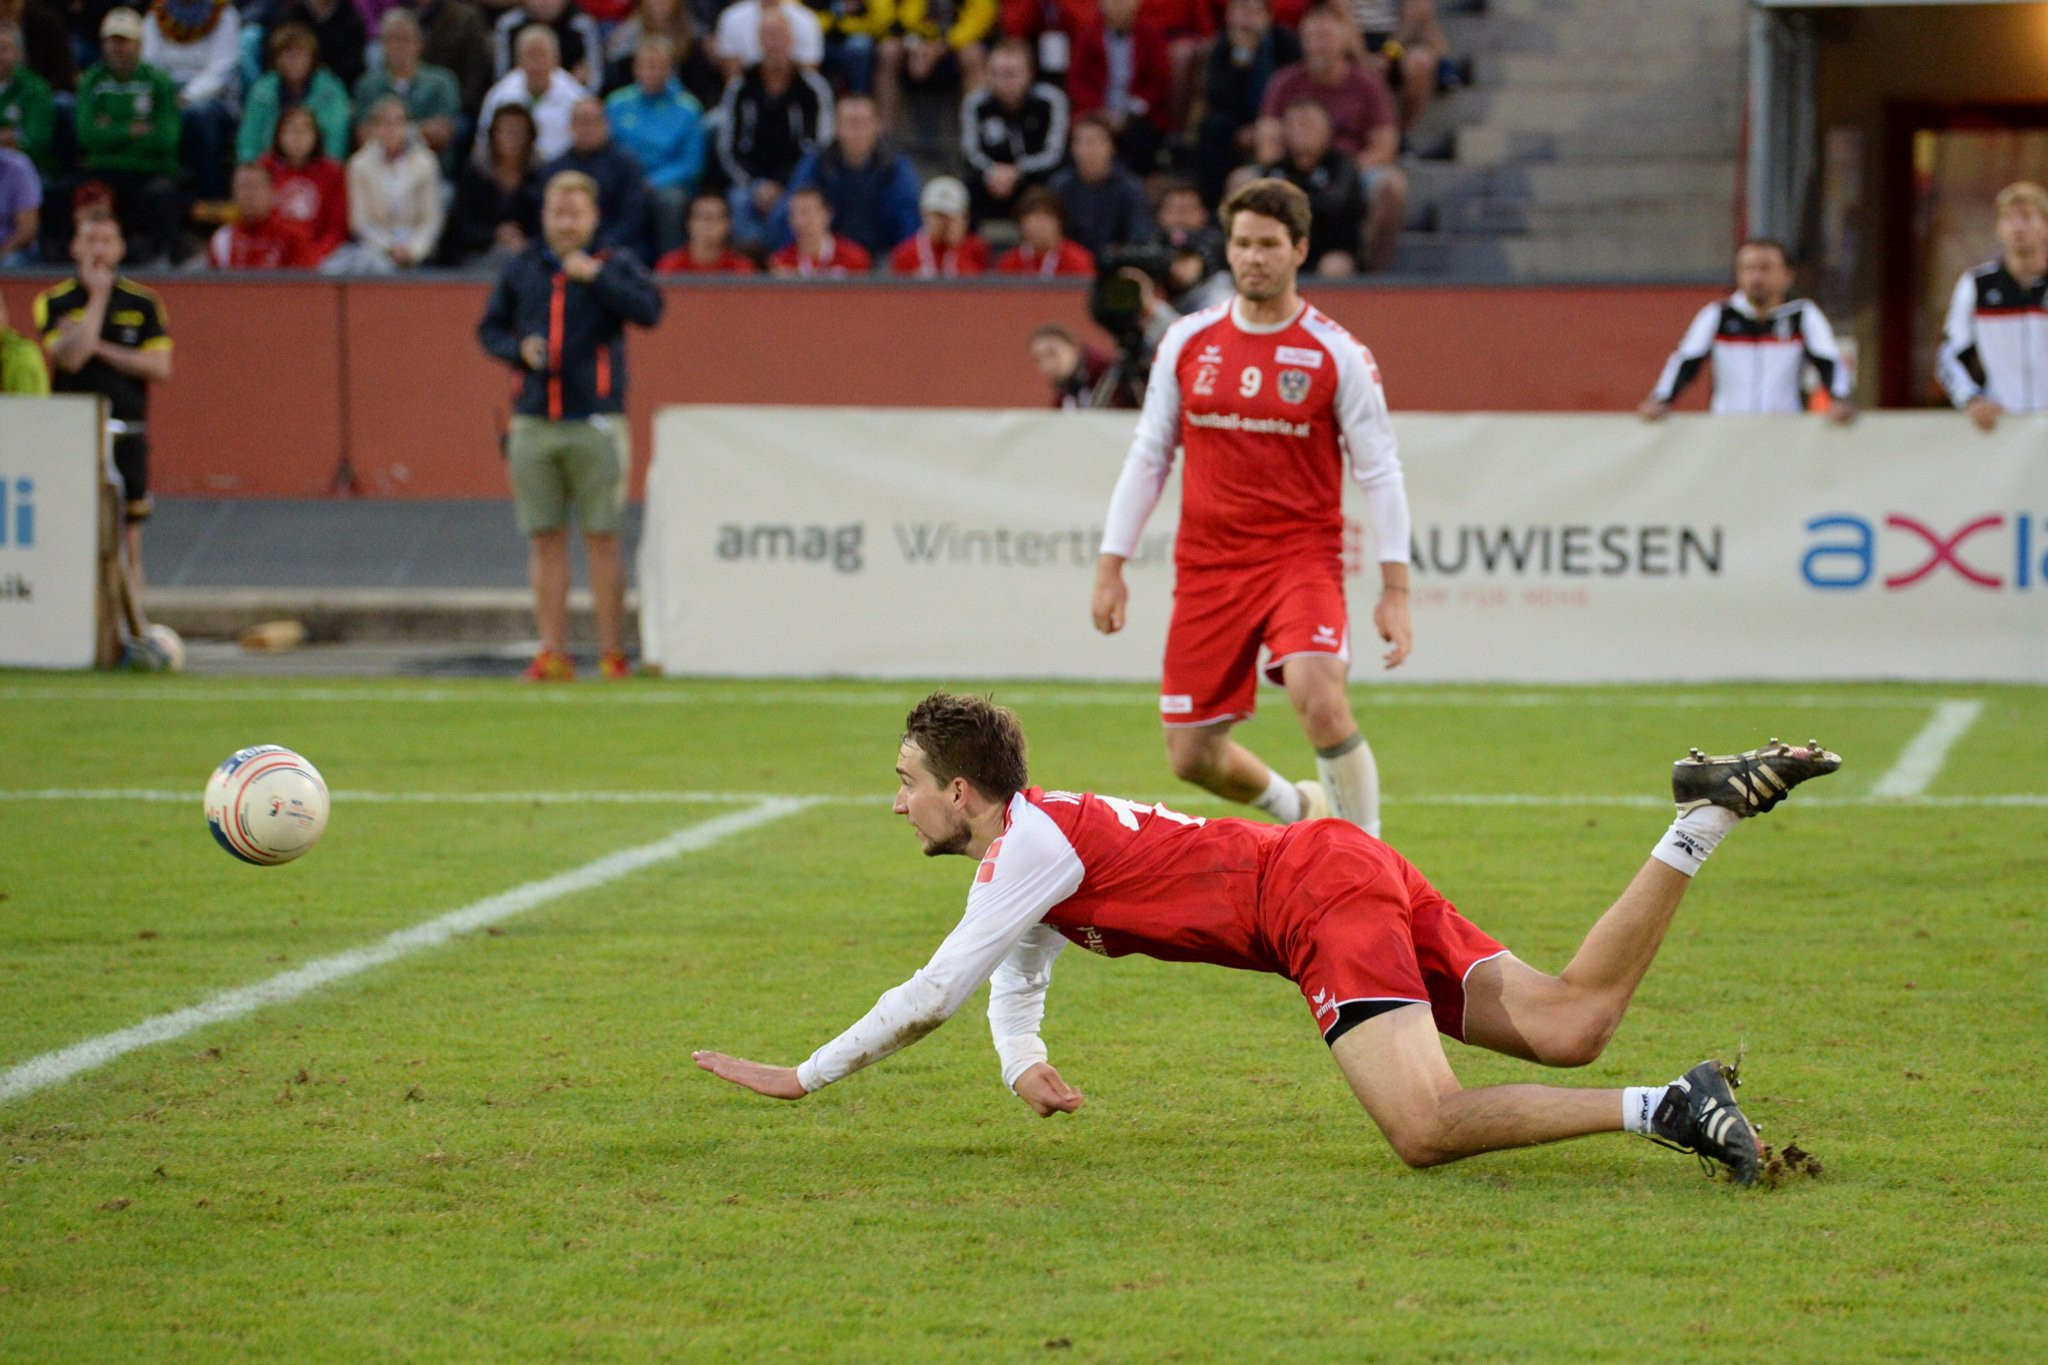 The minor classification matches saw New Zealand secure 11th place in Winterthur ©IFA